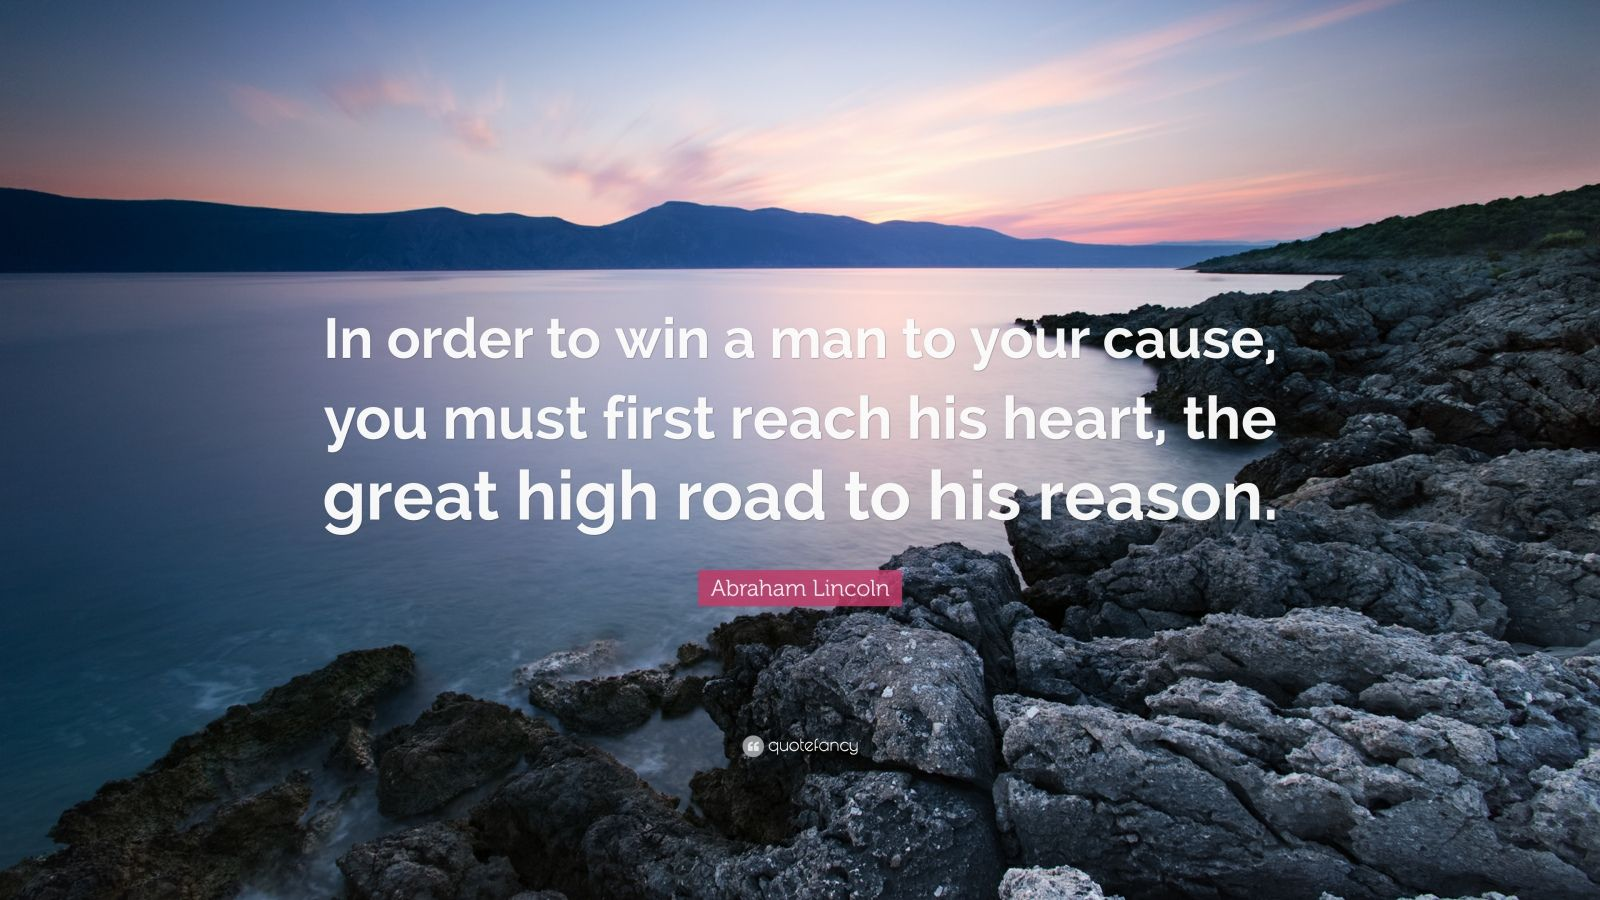 """Abraham Lincoln Quote: """"In order to win a man to your cause, you must first reach his heart, the great high road to his reason."""""""